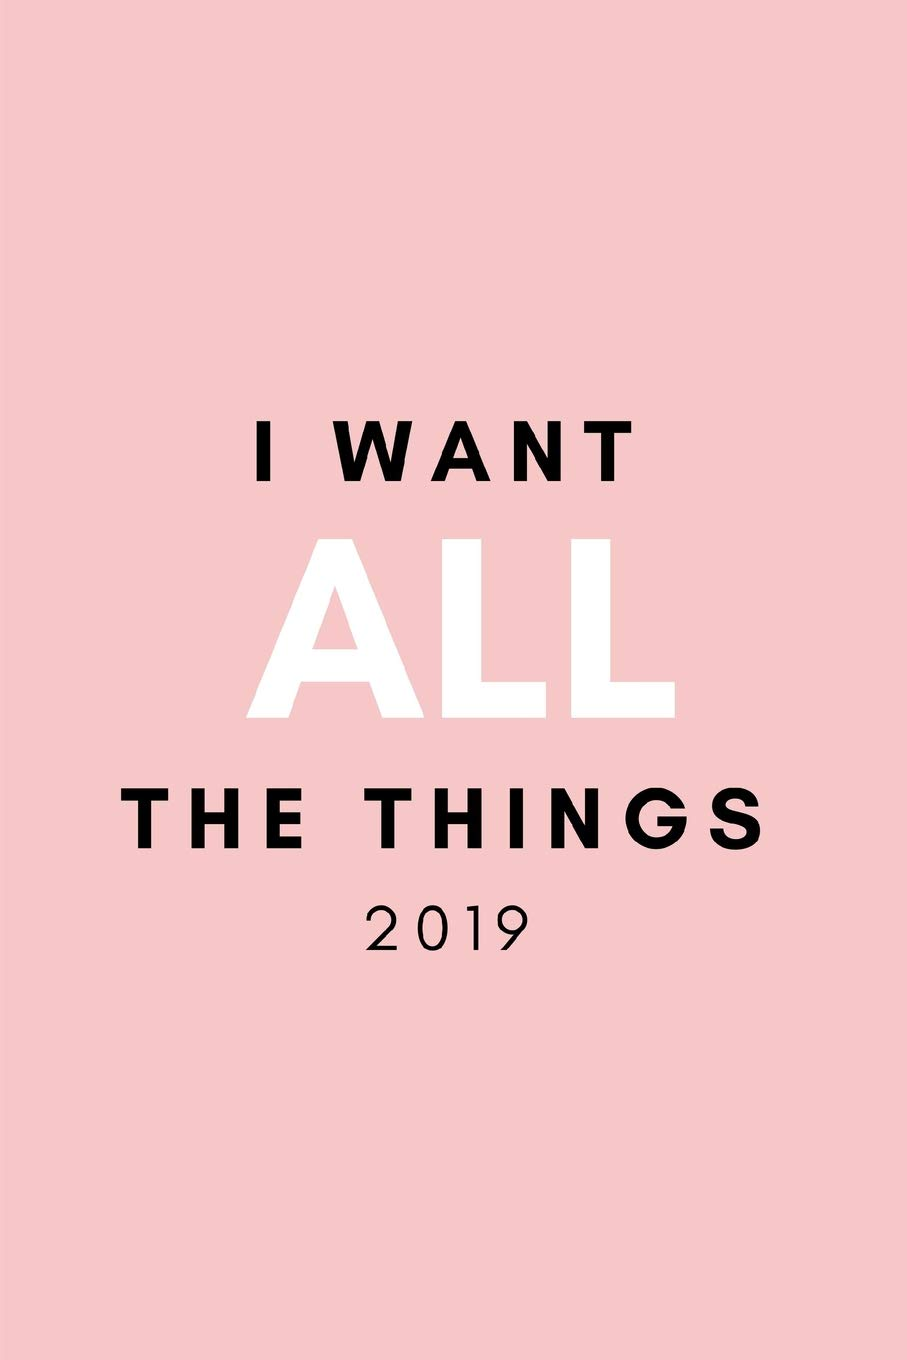 Funny Christmas Memes 2019.I Want All The Things 2019 Funny Meme Quote Parody Diary